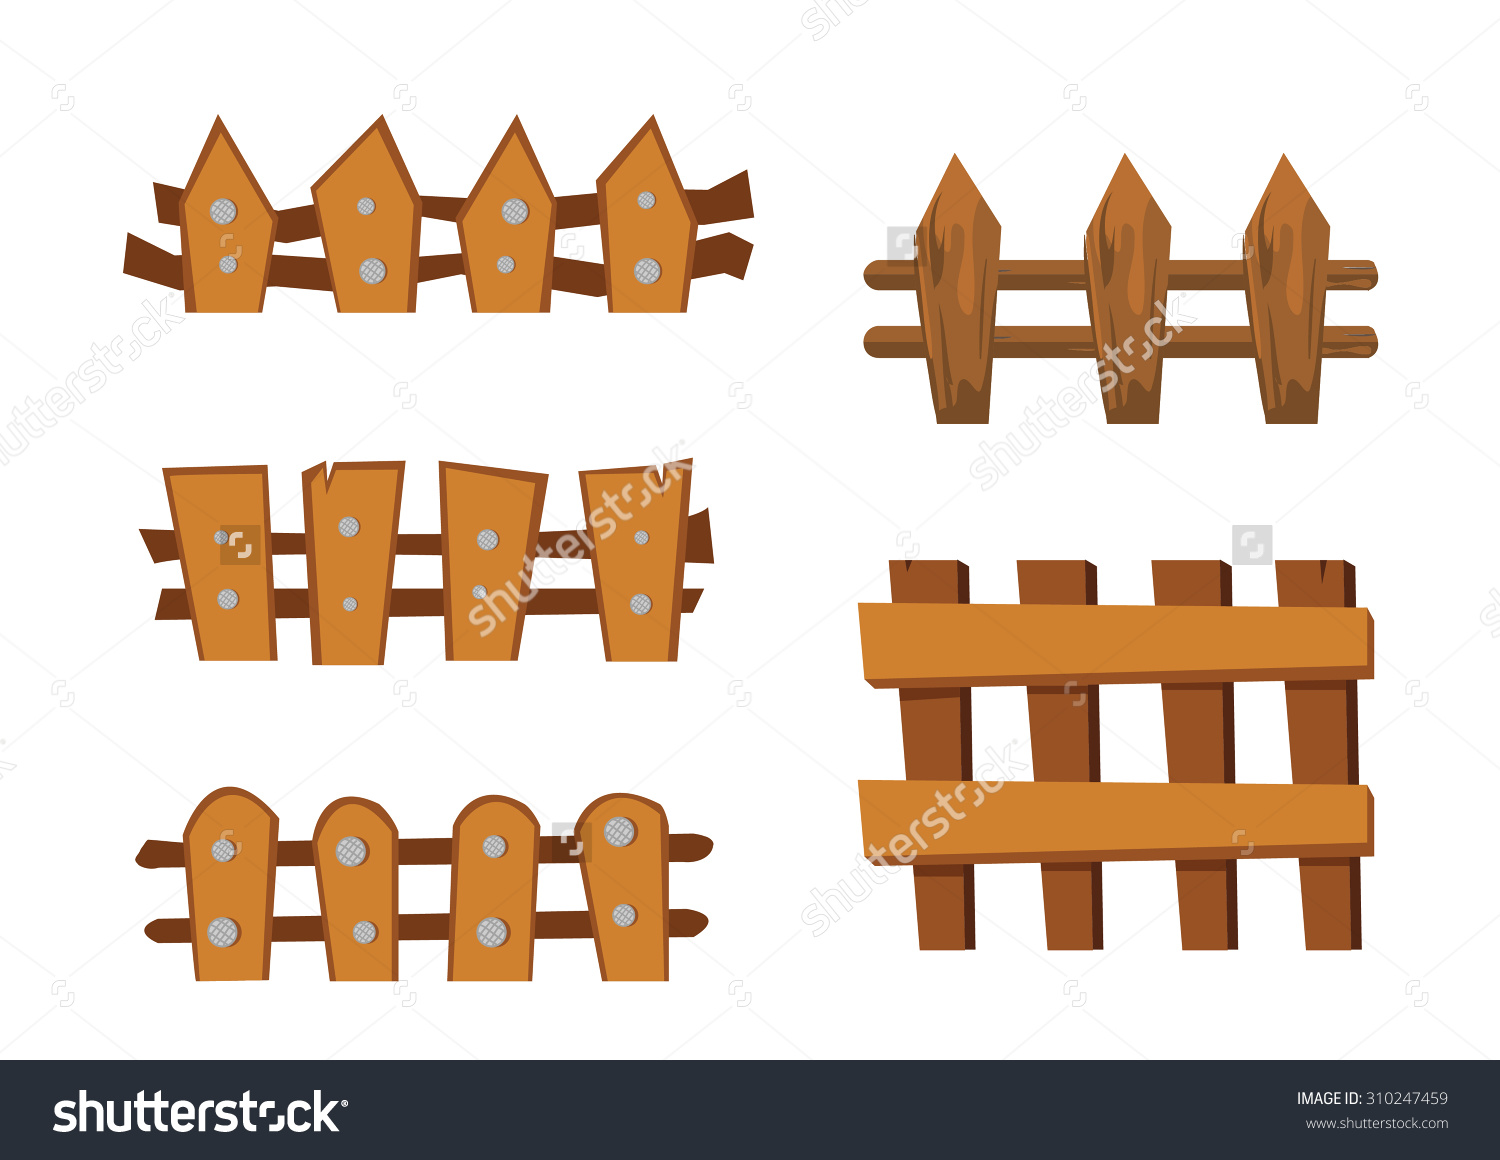 Wood Fence Cartoon Object Stock Vector 310247459.